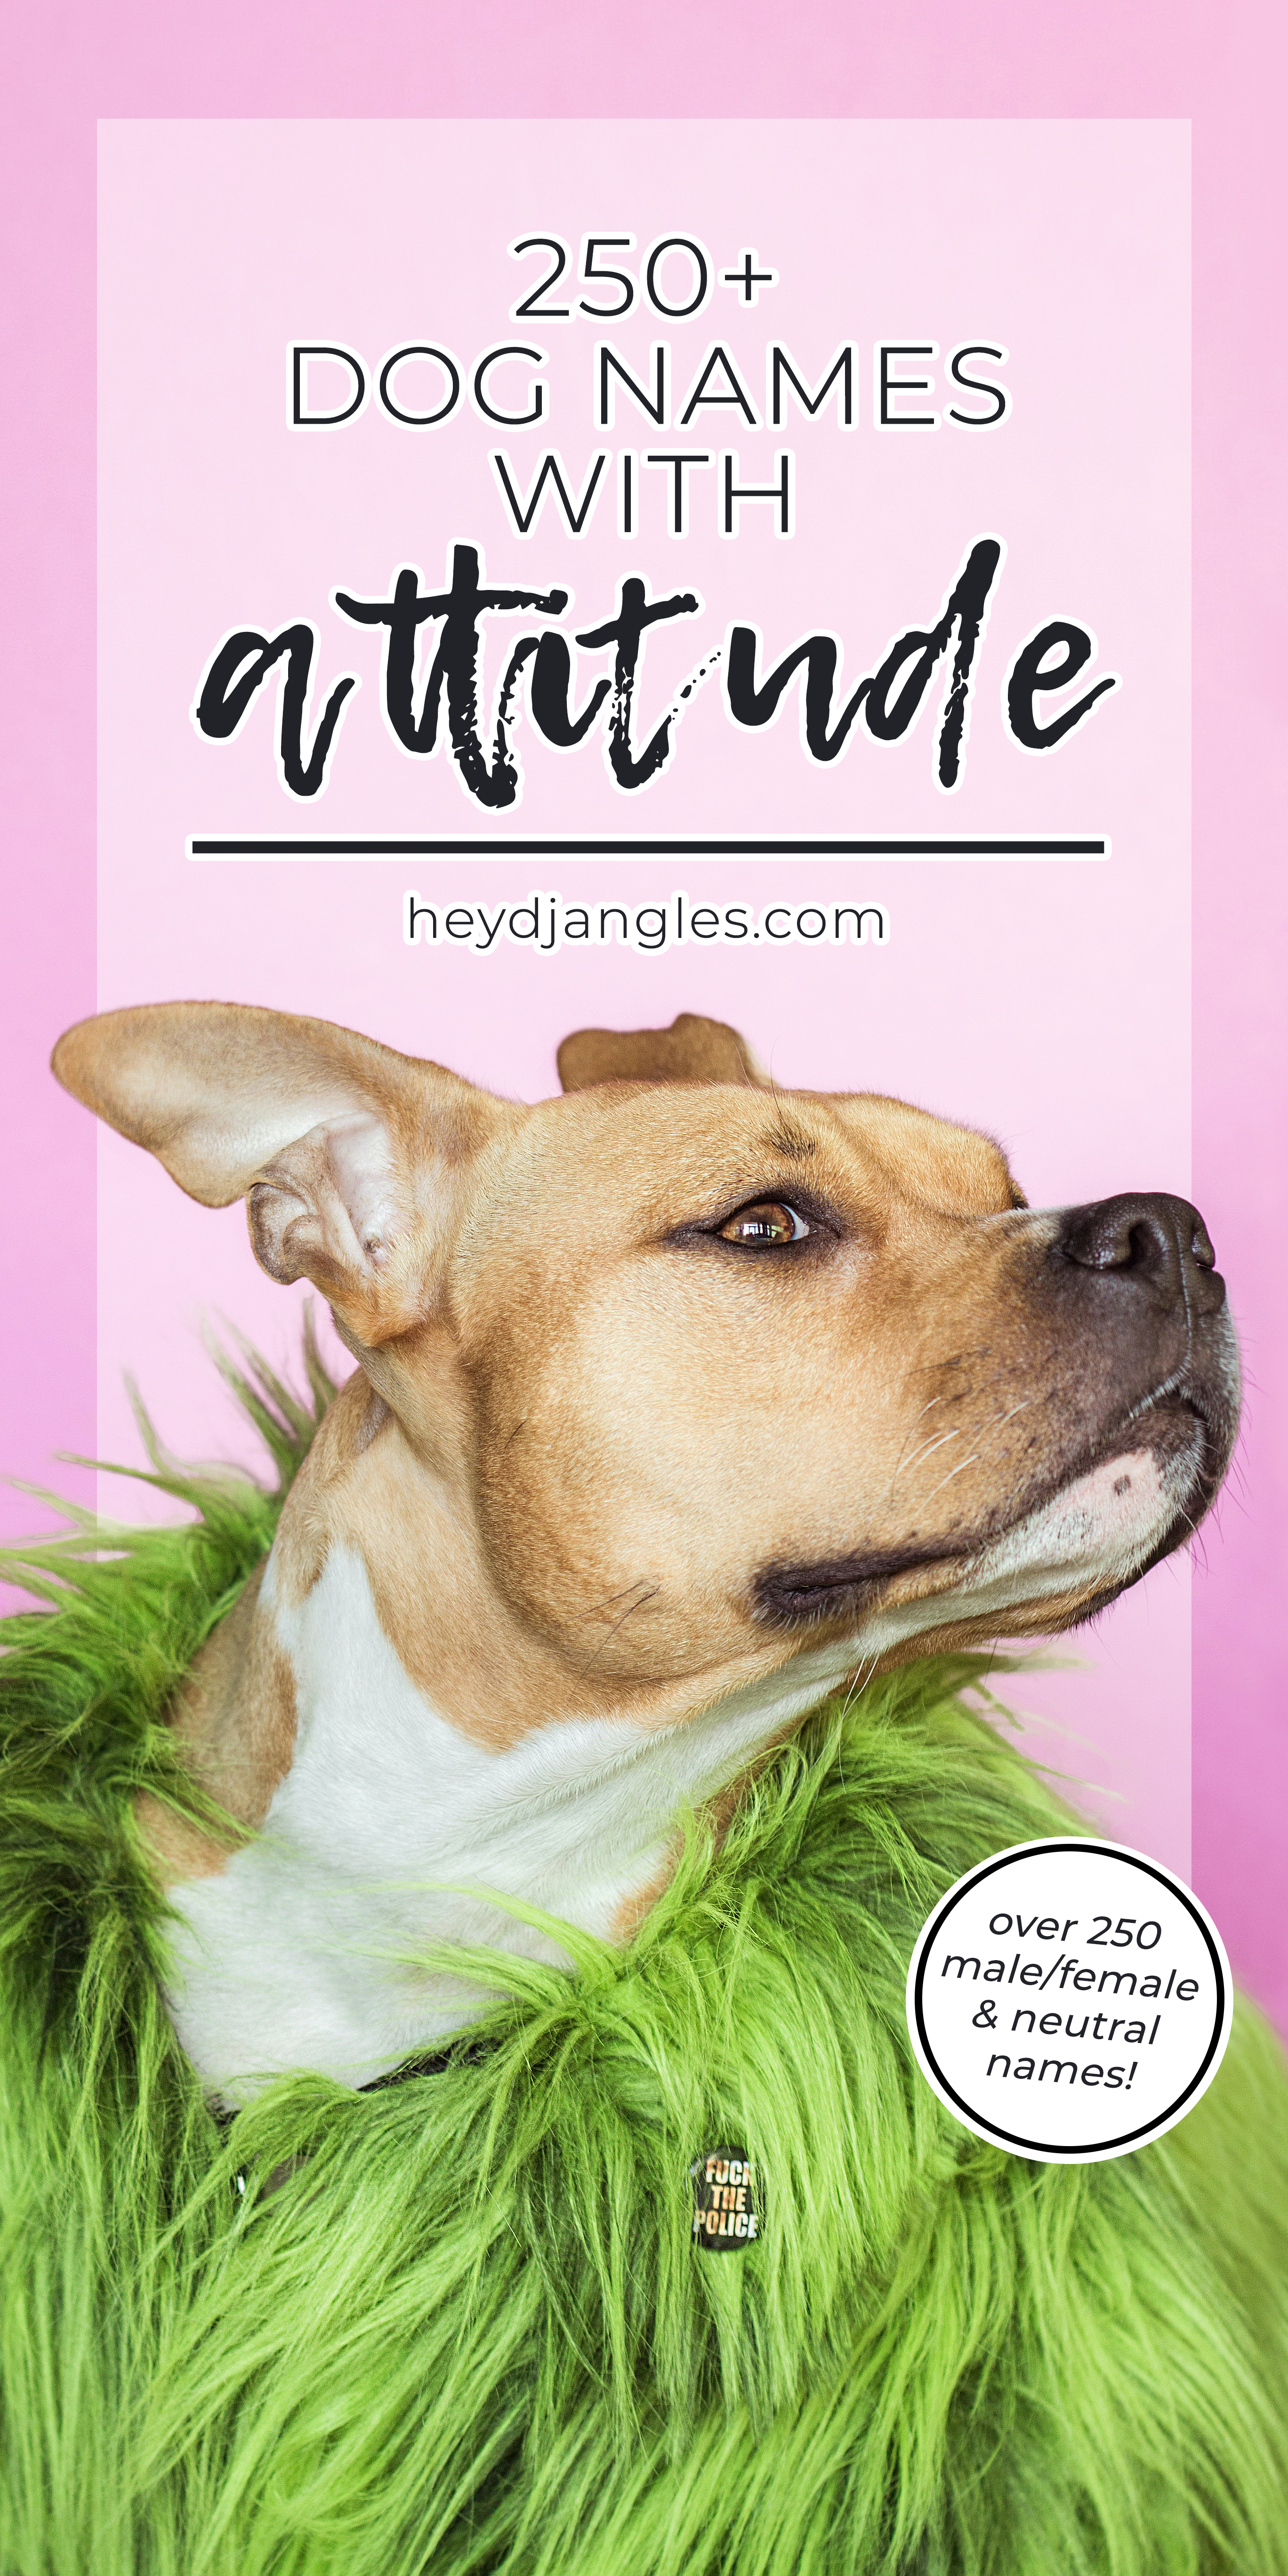 250+ Sassy Dog Names with Attitude - Hey, Djangles. New dog names, puppy name ideas, pet name inspiration.